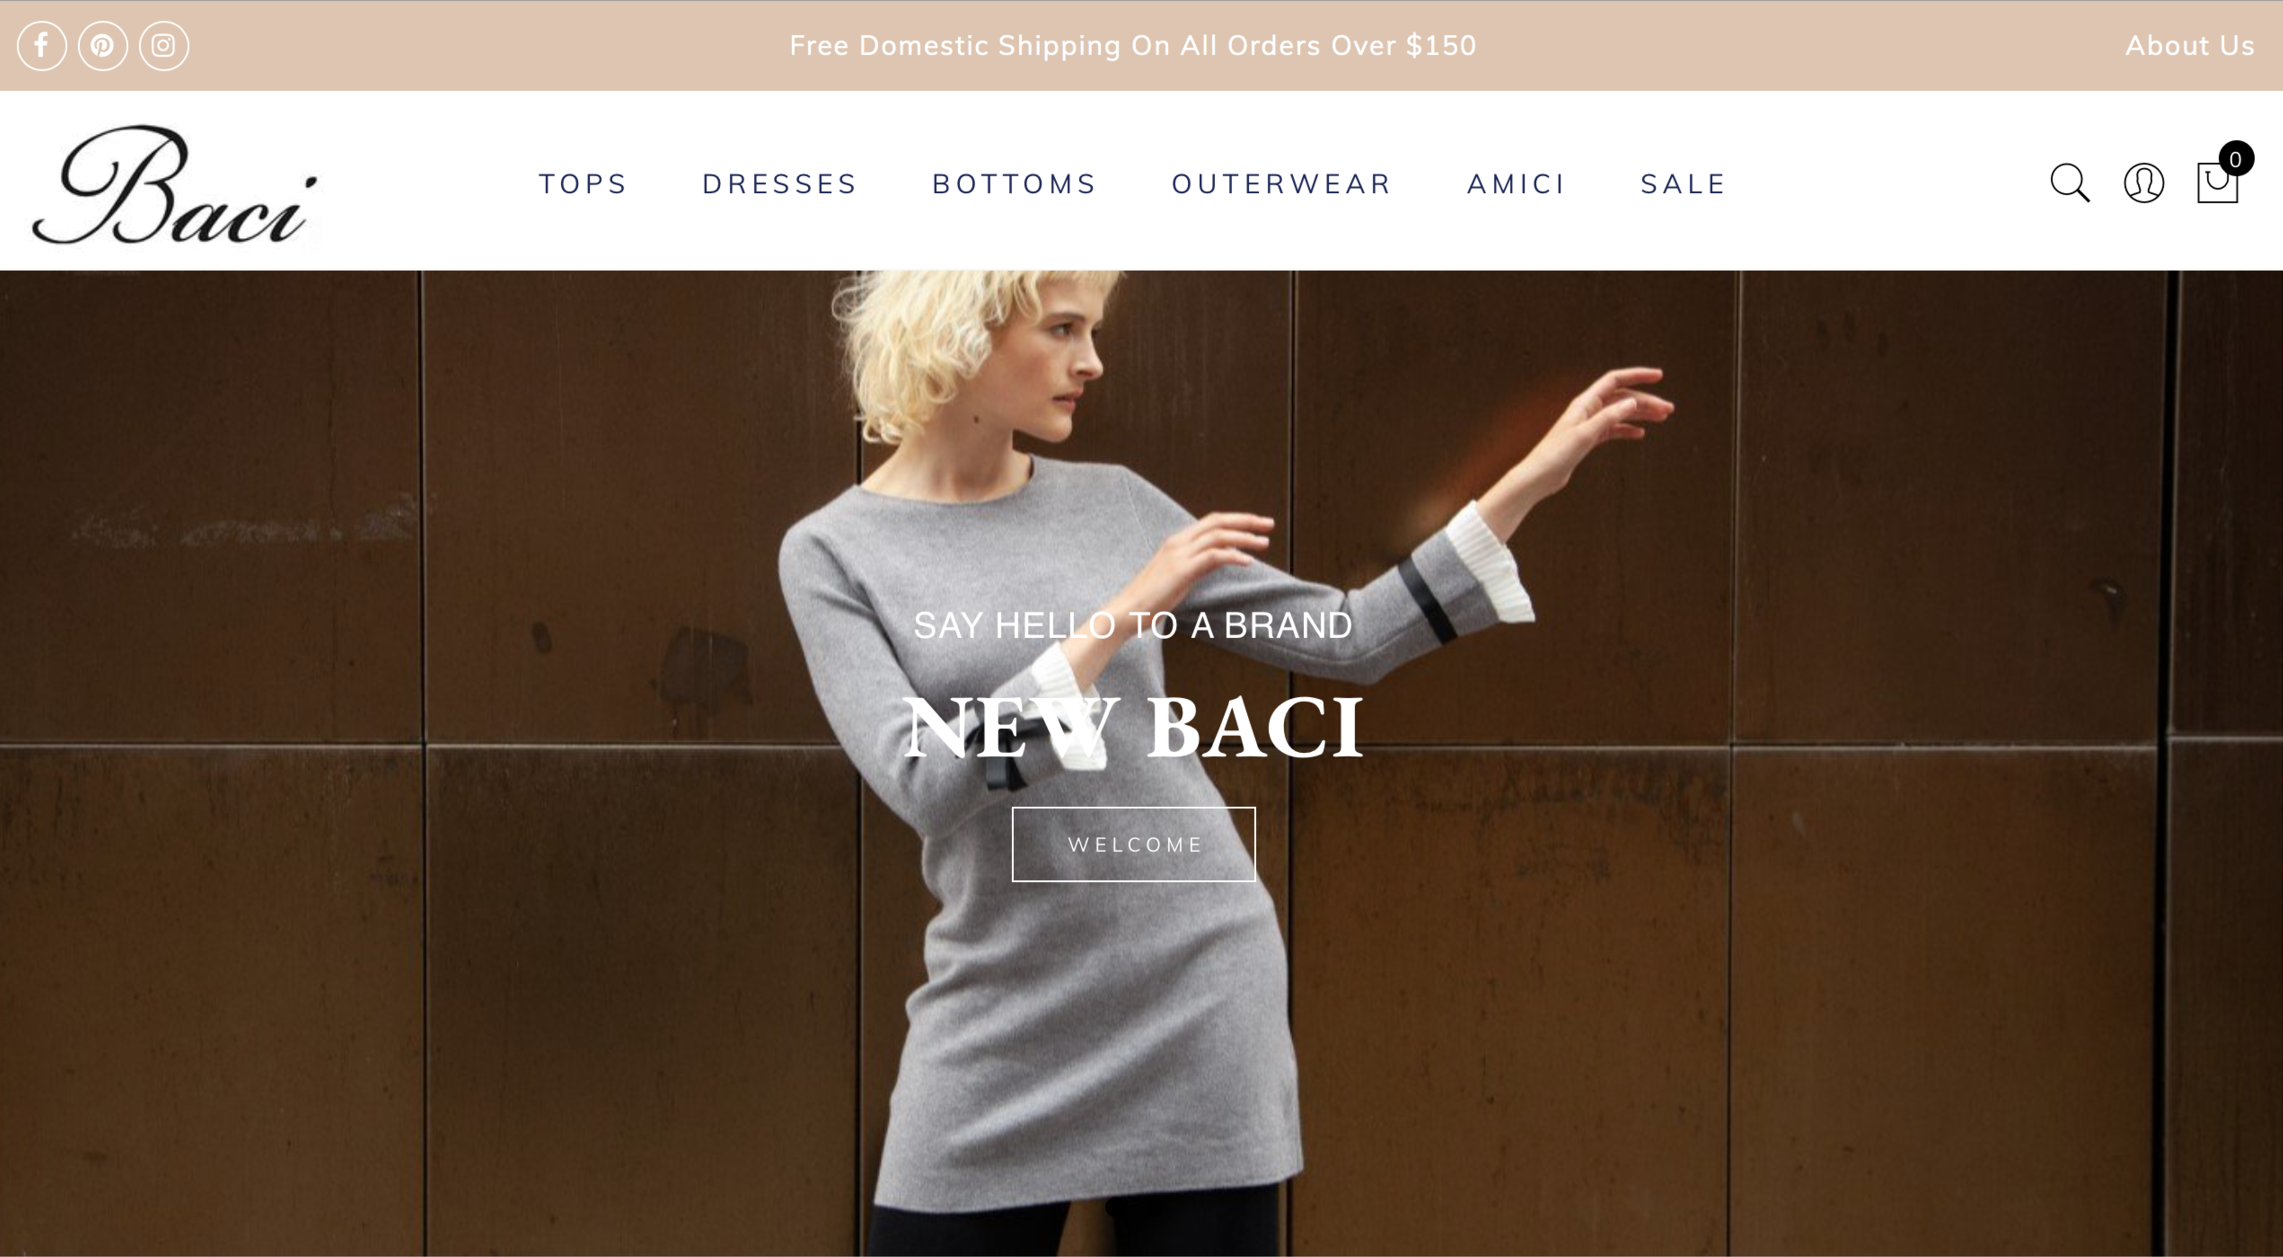 Redesigned and launched all-new retail site for Baci, utilizing the Shopify e-commerce platform.